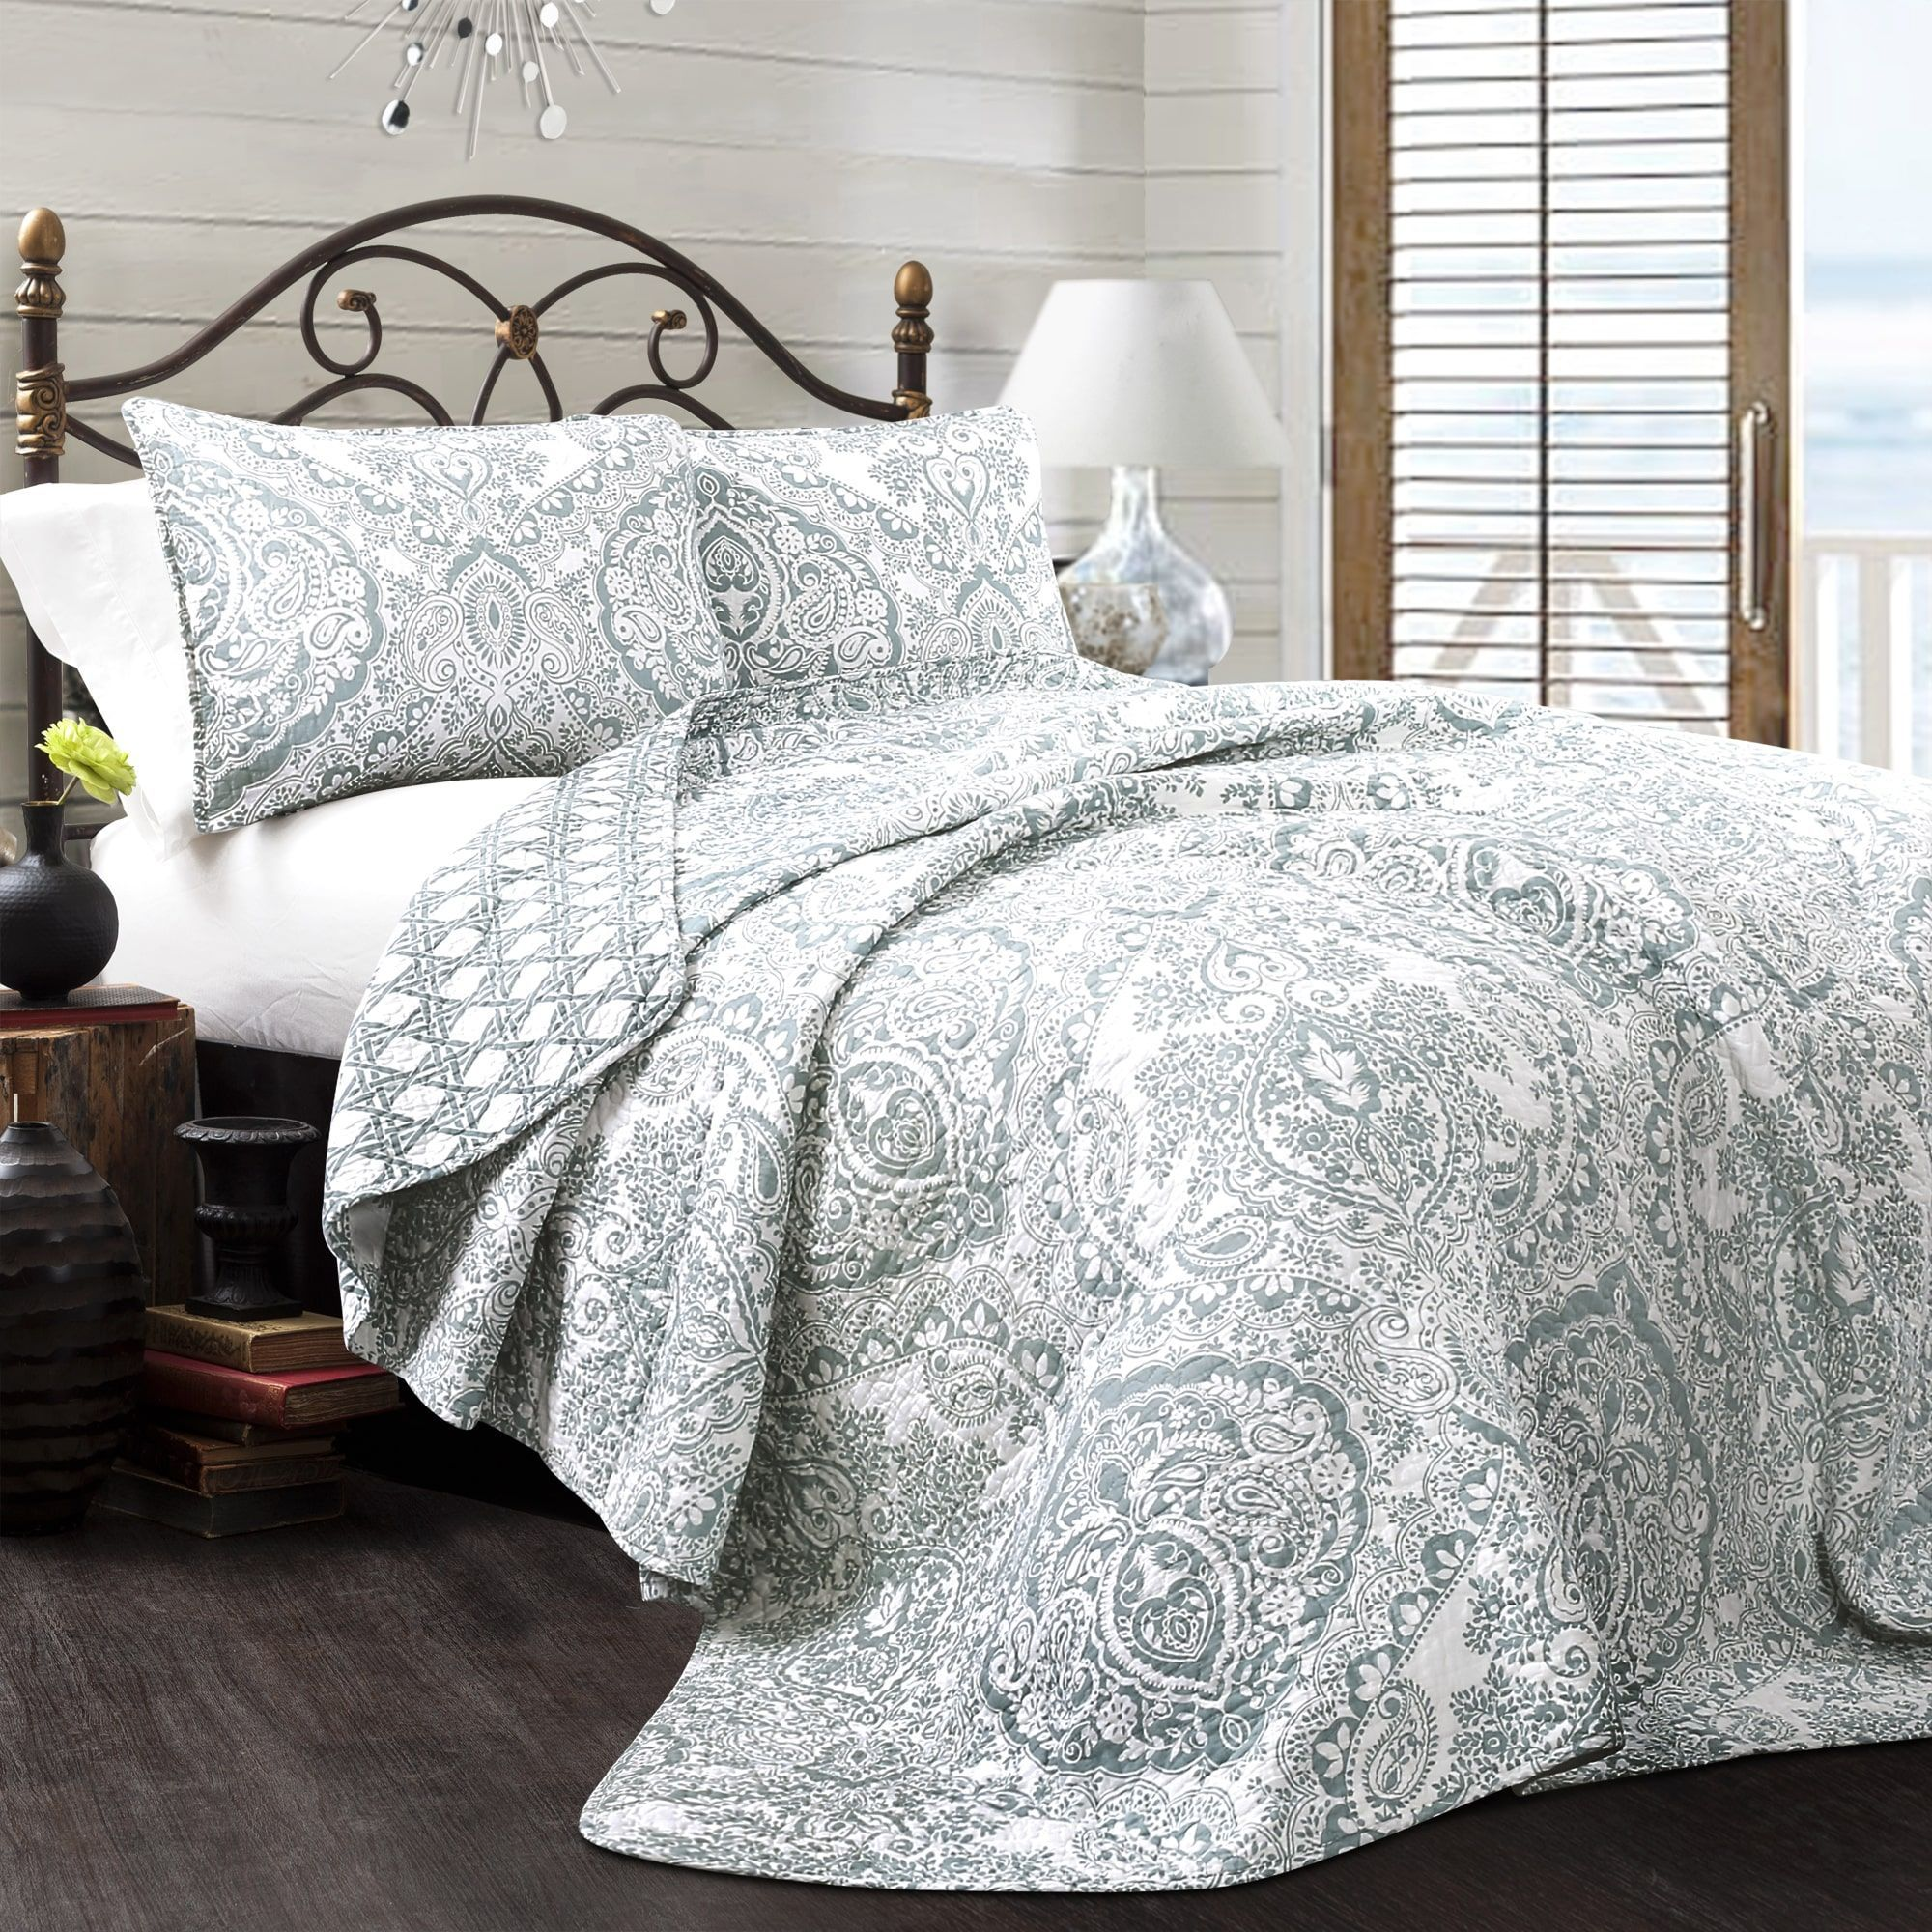 Winchester 5 Piece Queen Bedroom Set: Bedding, Furniture, Electronics, Jewelry